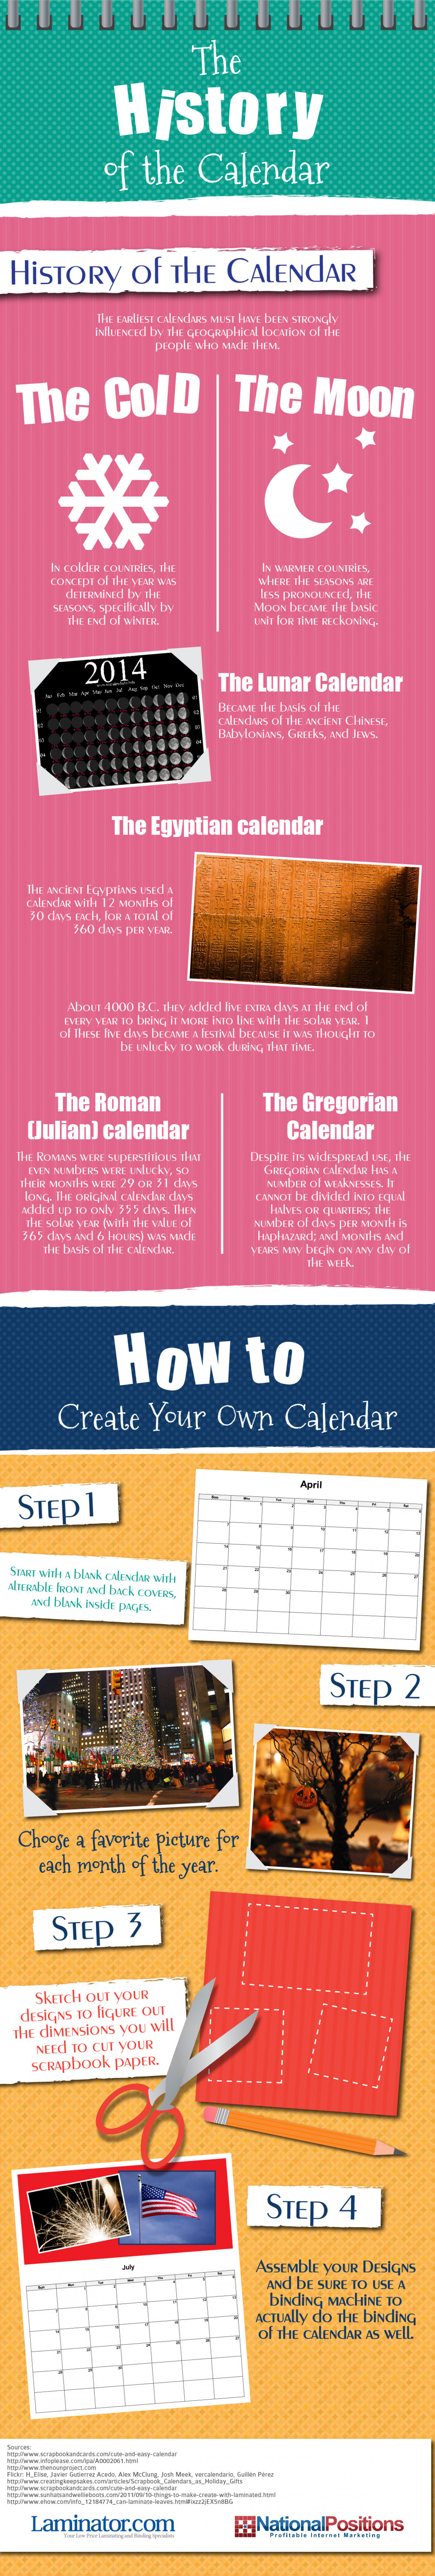 The History of the Calendar Infographic